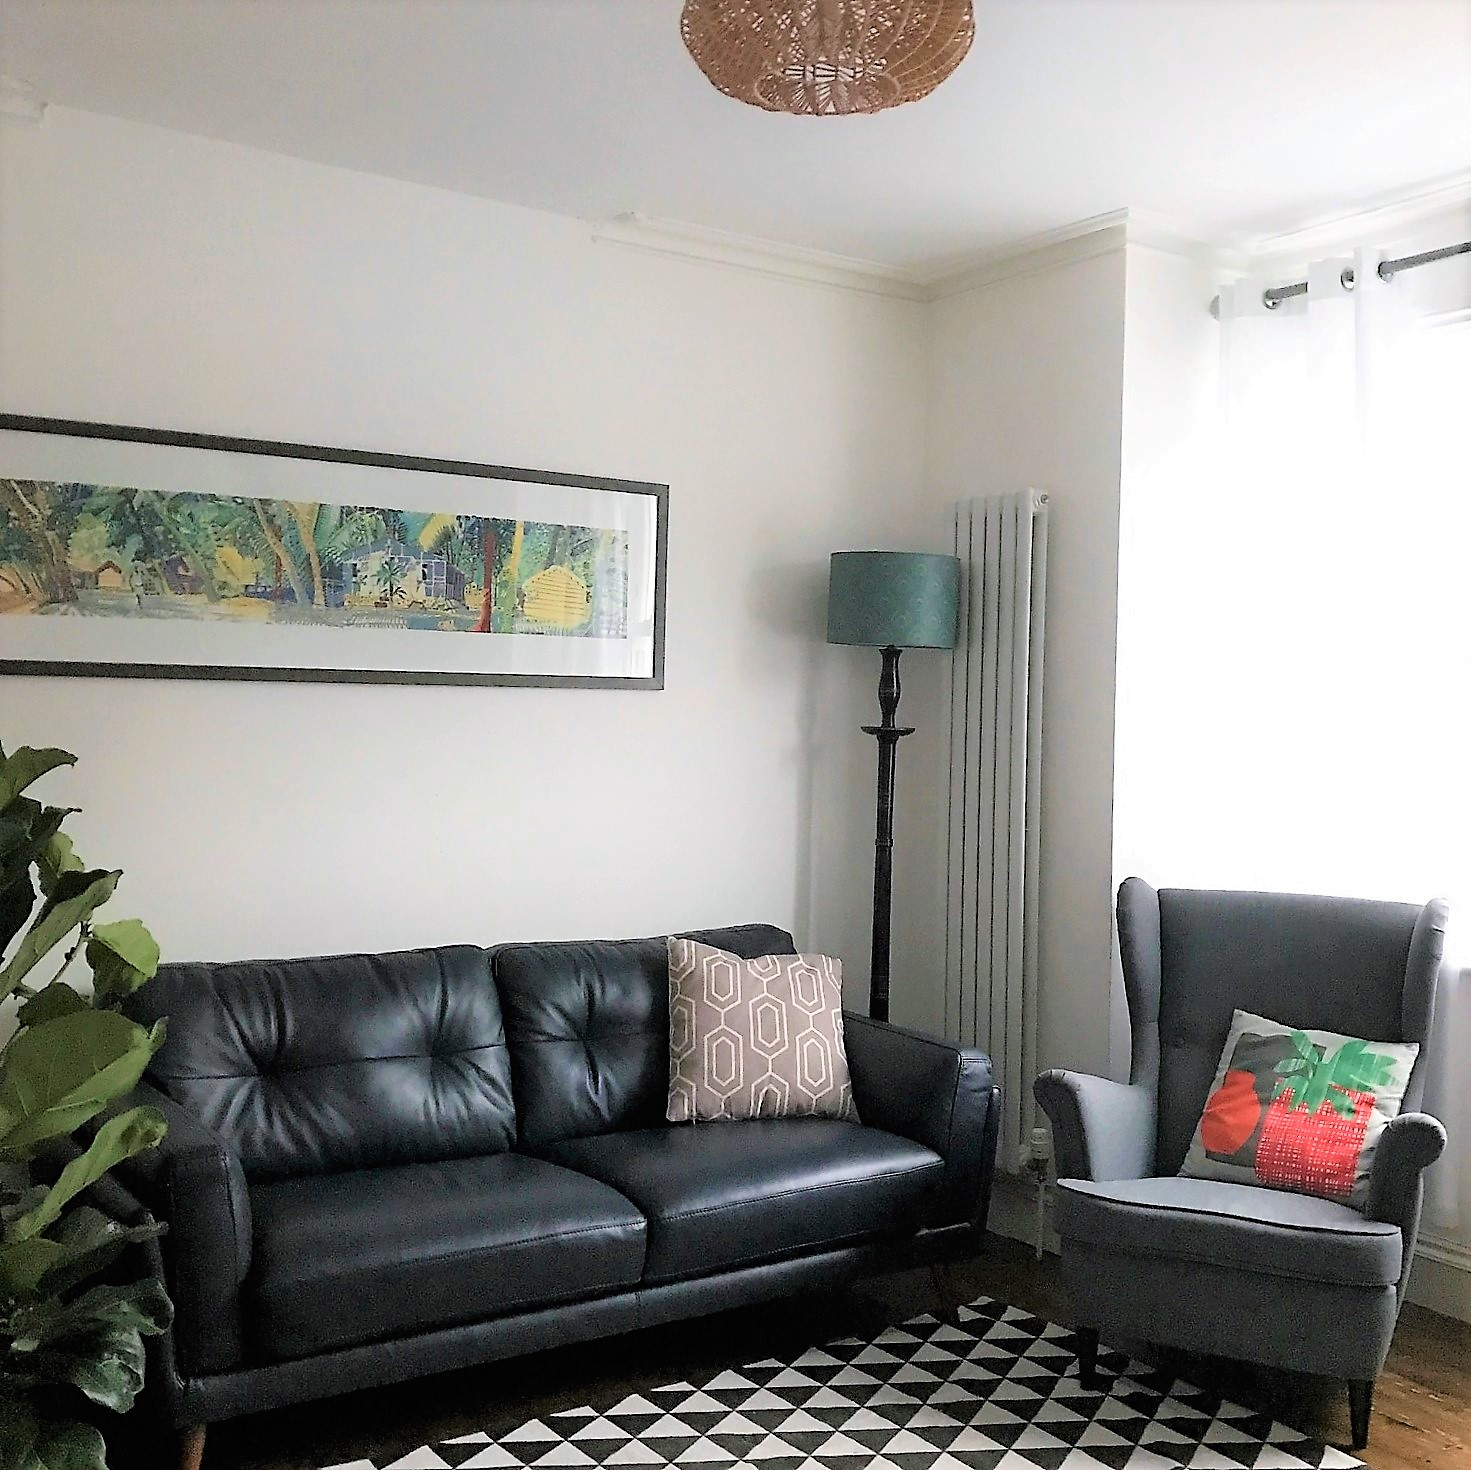 Updating The Living Room With A New Sofa